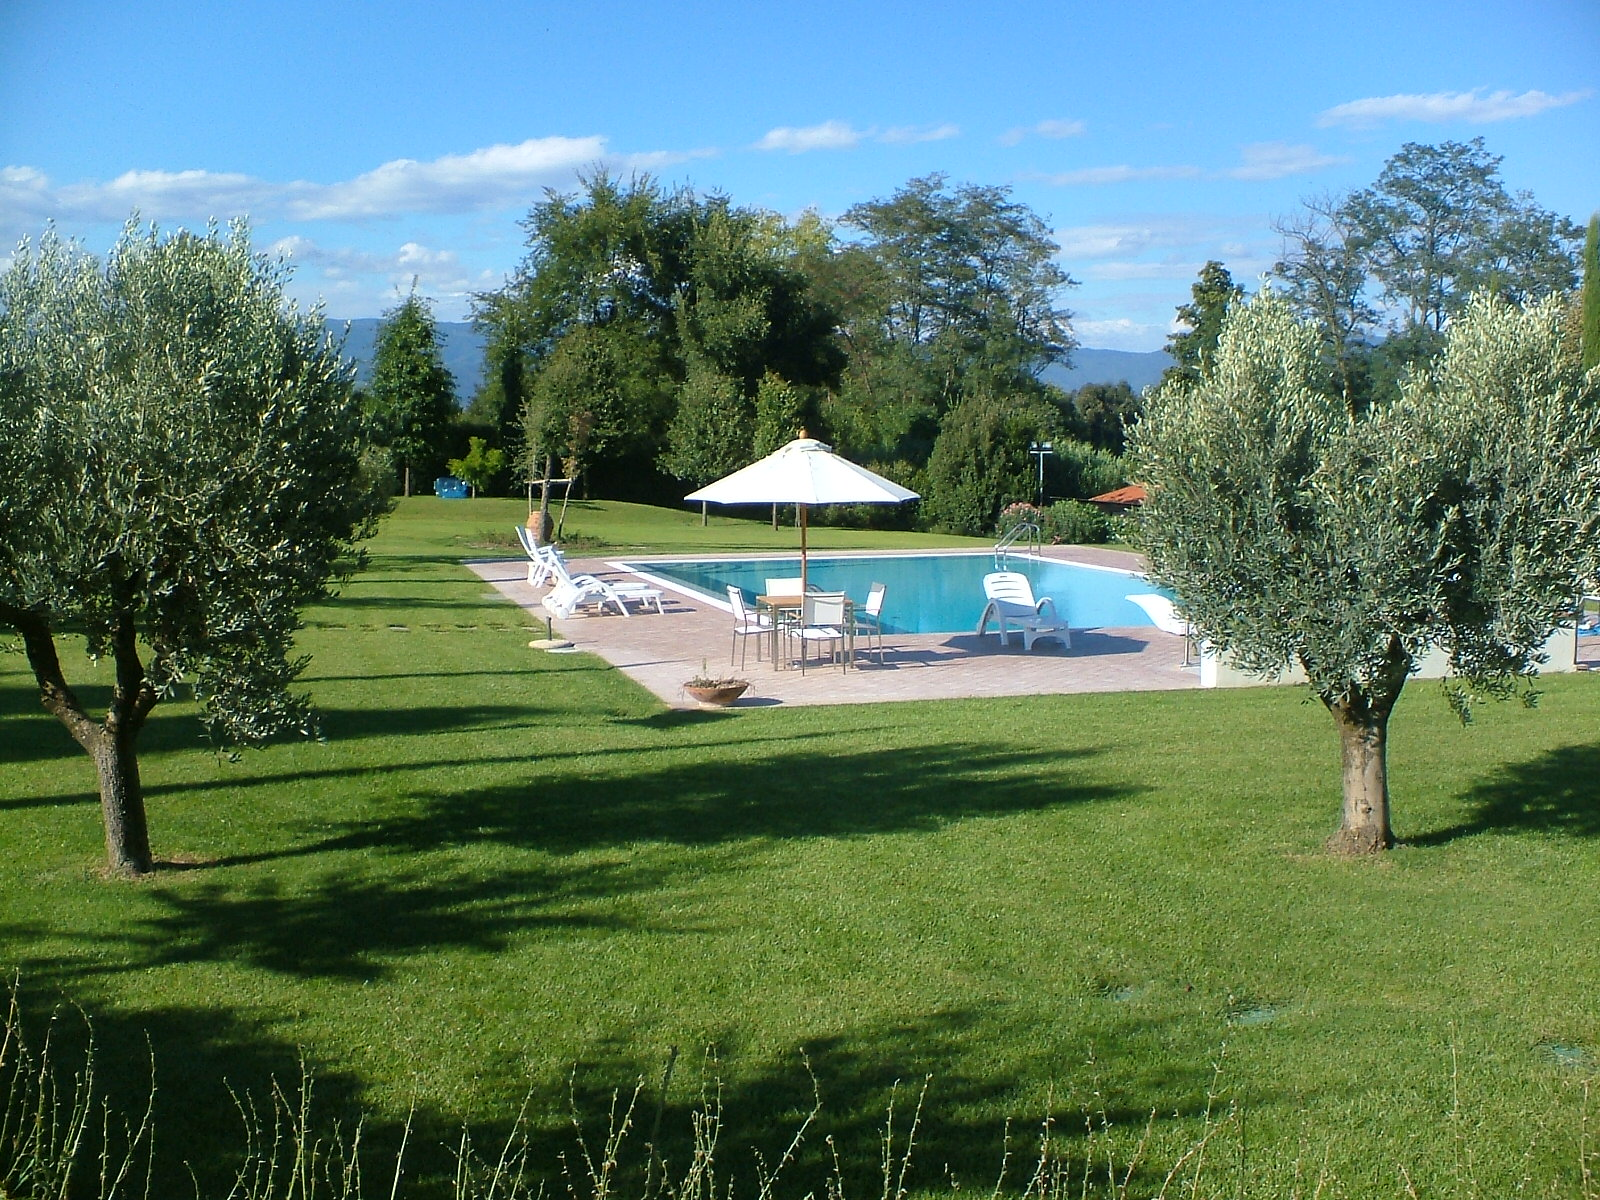 Giardino con piscina a siena 7 frullani group luxury gardens